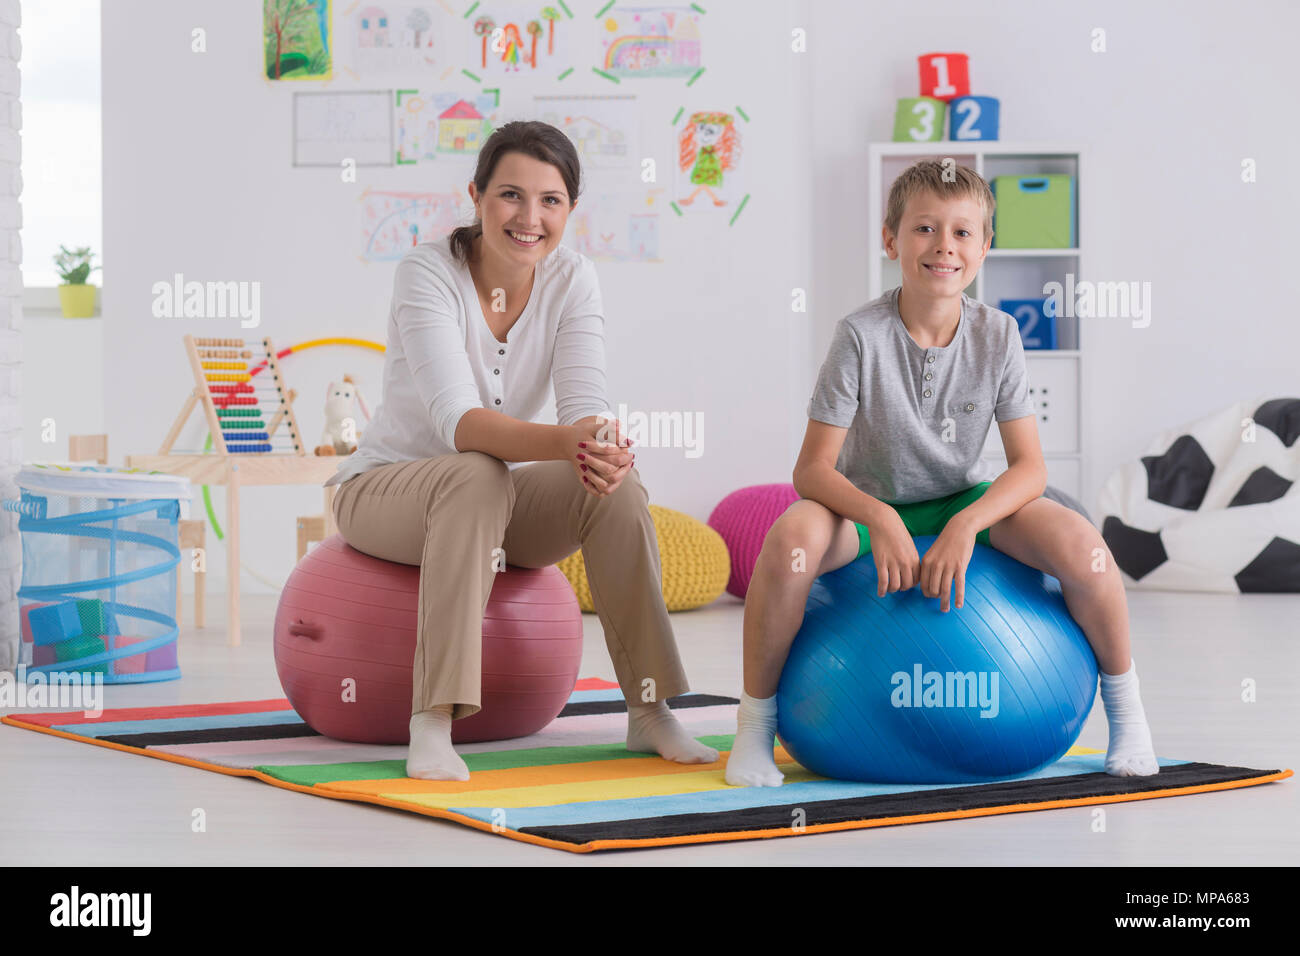 Shot of a young woman and a little boy sitting on exercise balls in a room - Stock Image